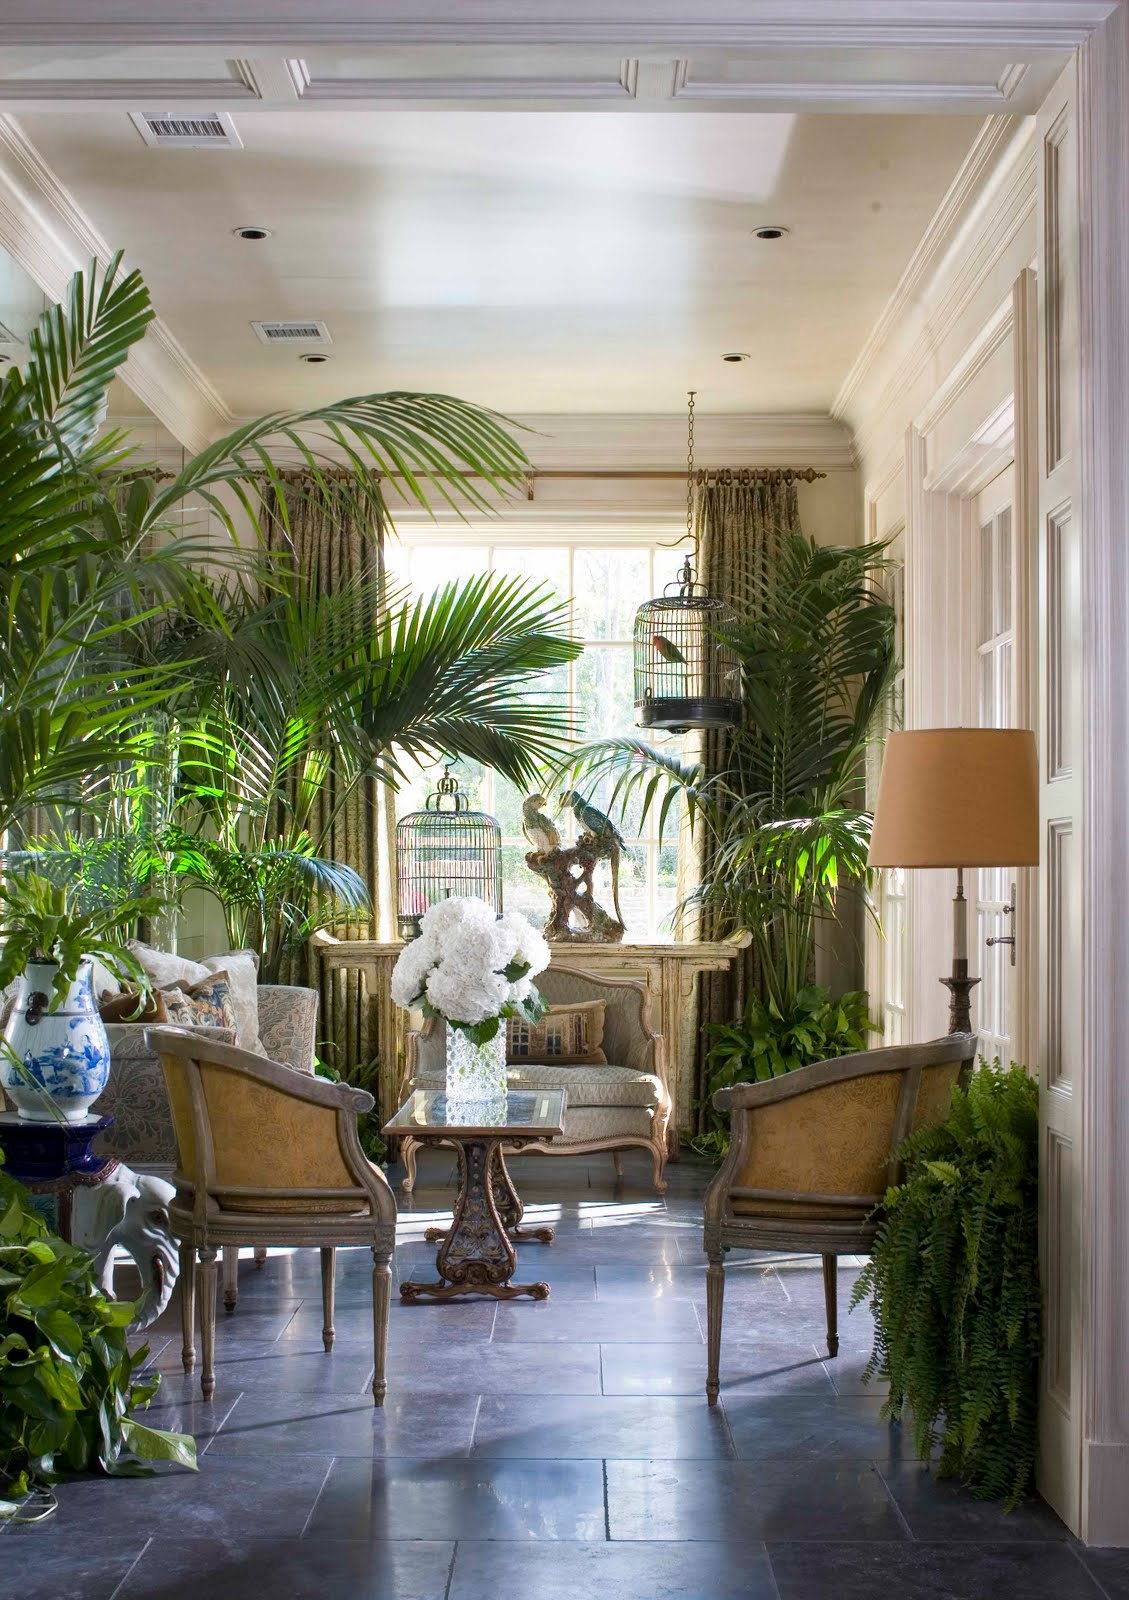 Birdcage Southern Accetn Showhouse Joe